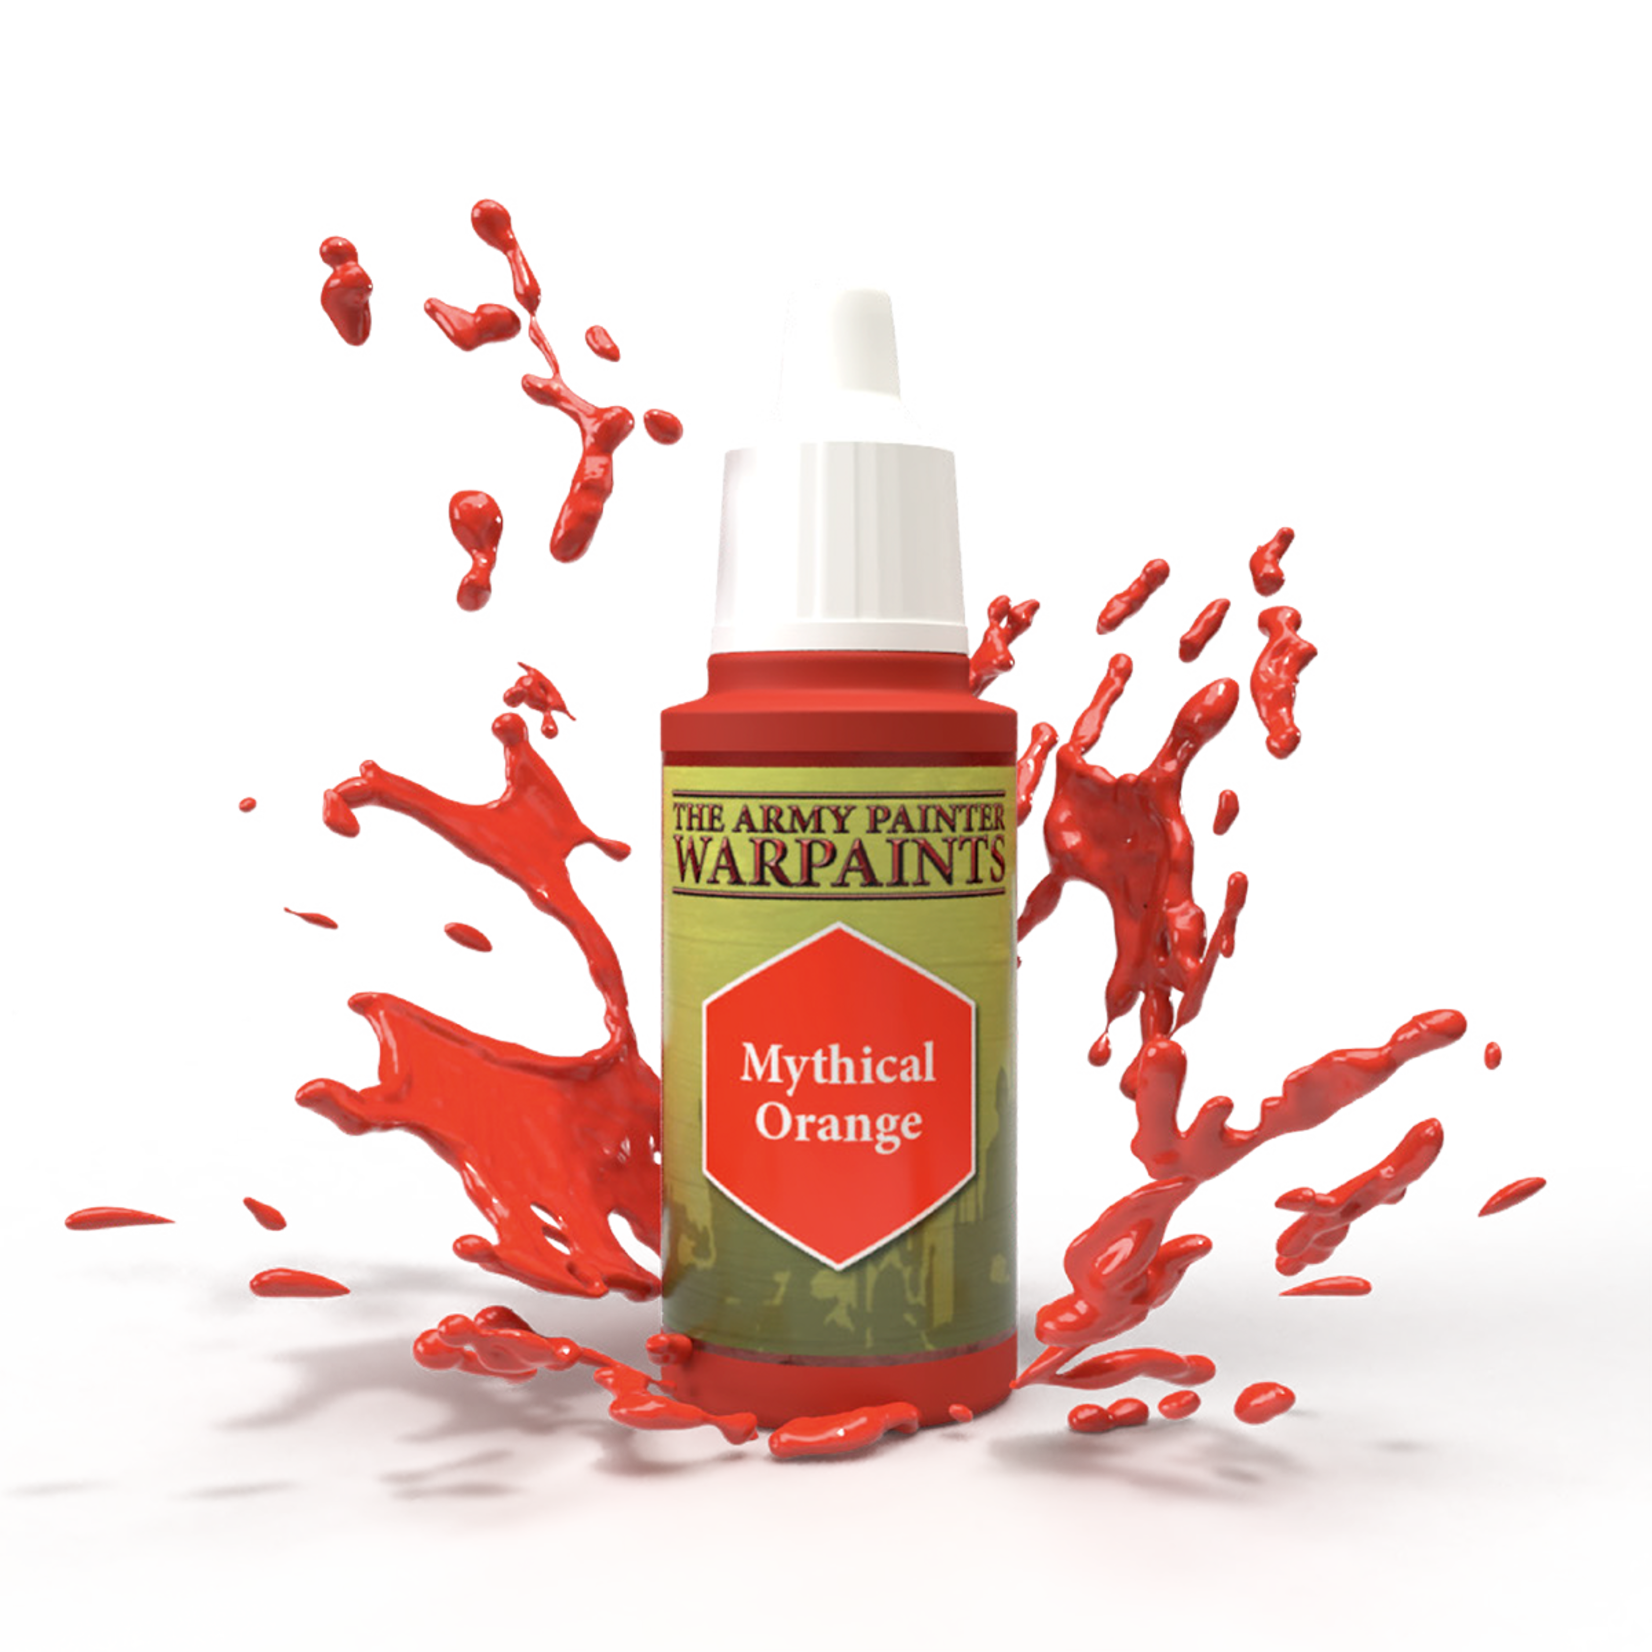 The Army Painter The Army Painter: Warpaints:  Mythical Orange